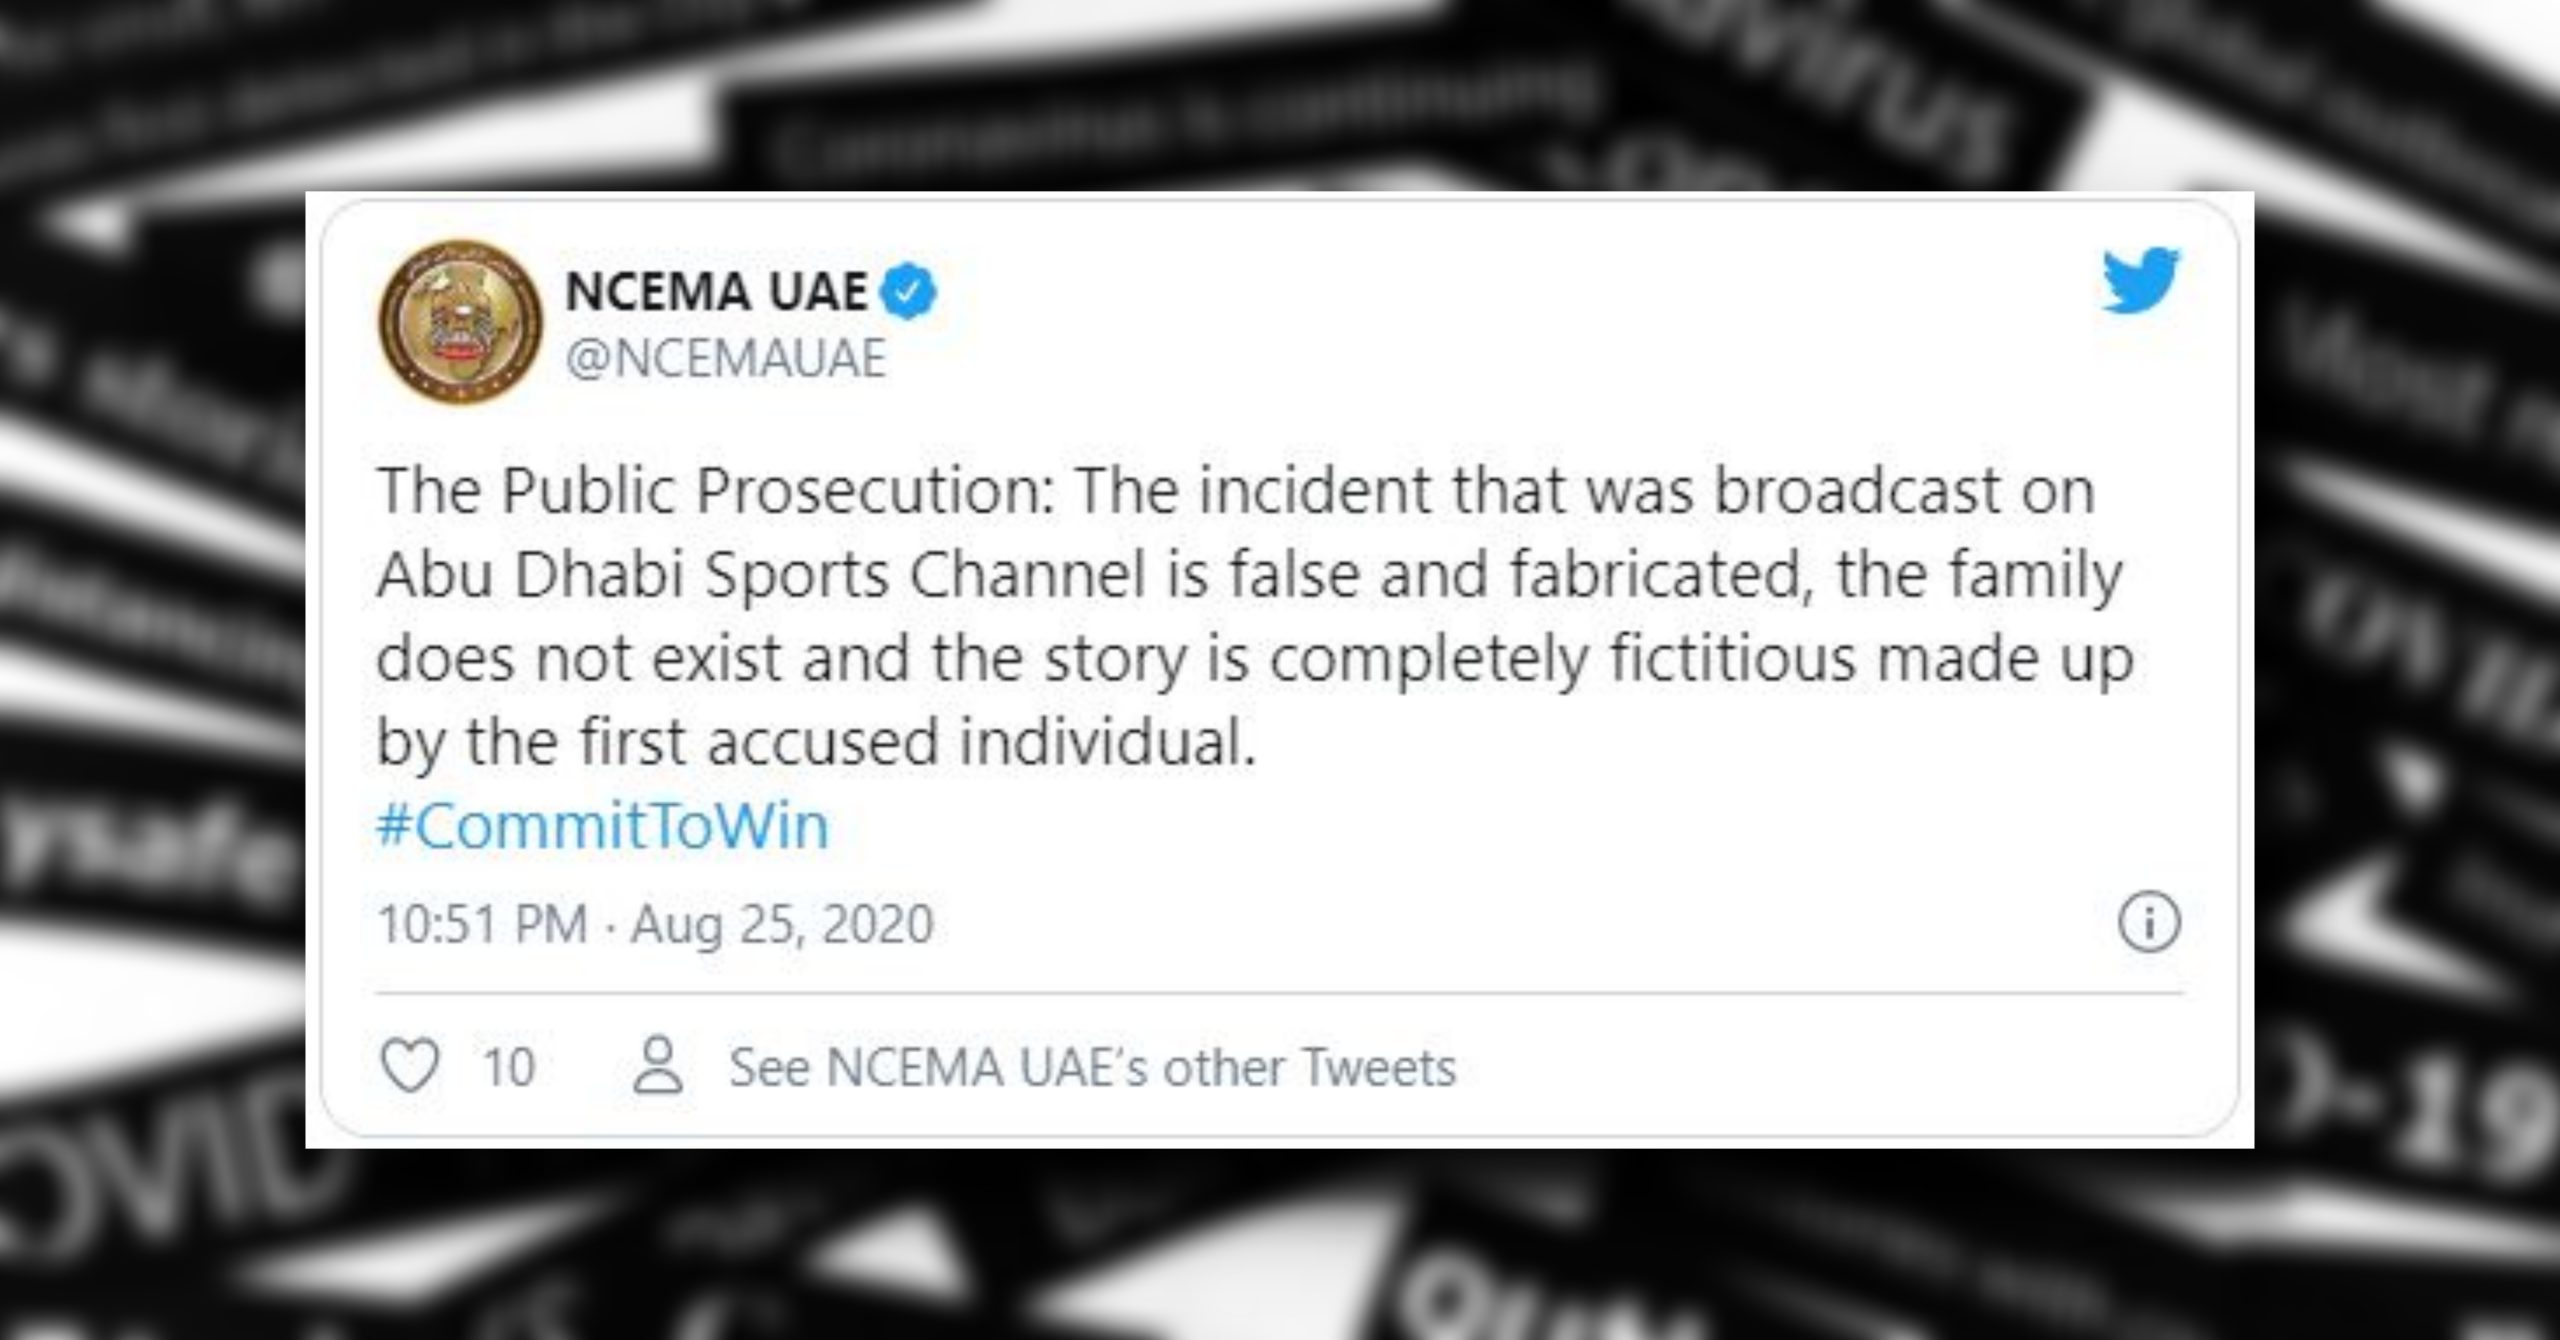 Two Arrested for Spreading Fake News Involving '5 COVID-19 Deaths in a Family' in UAE